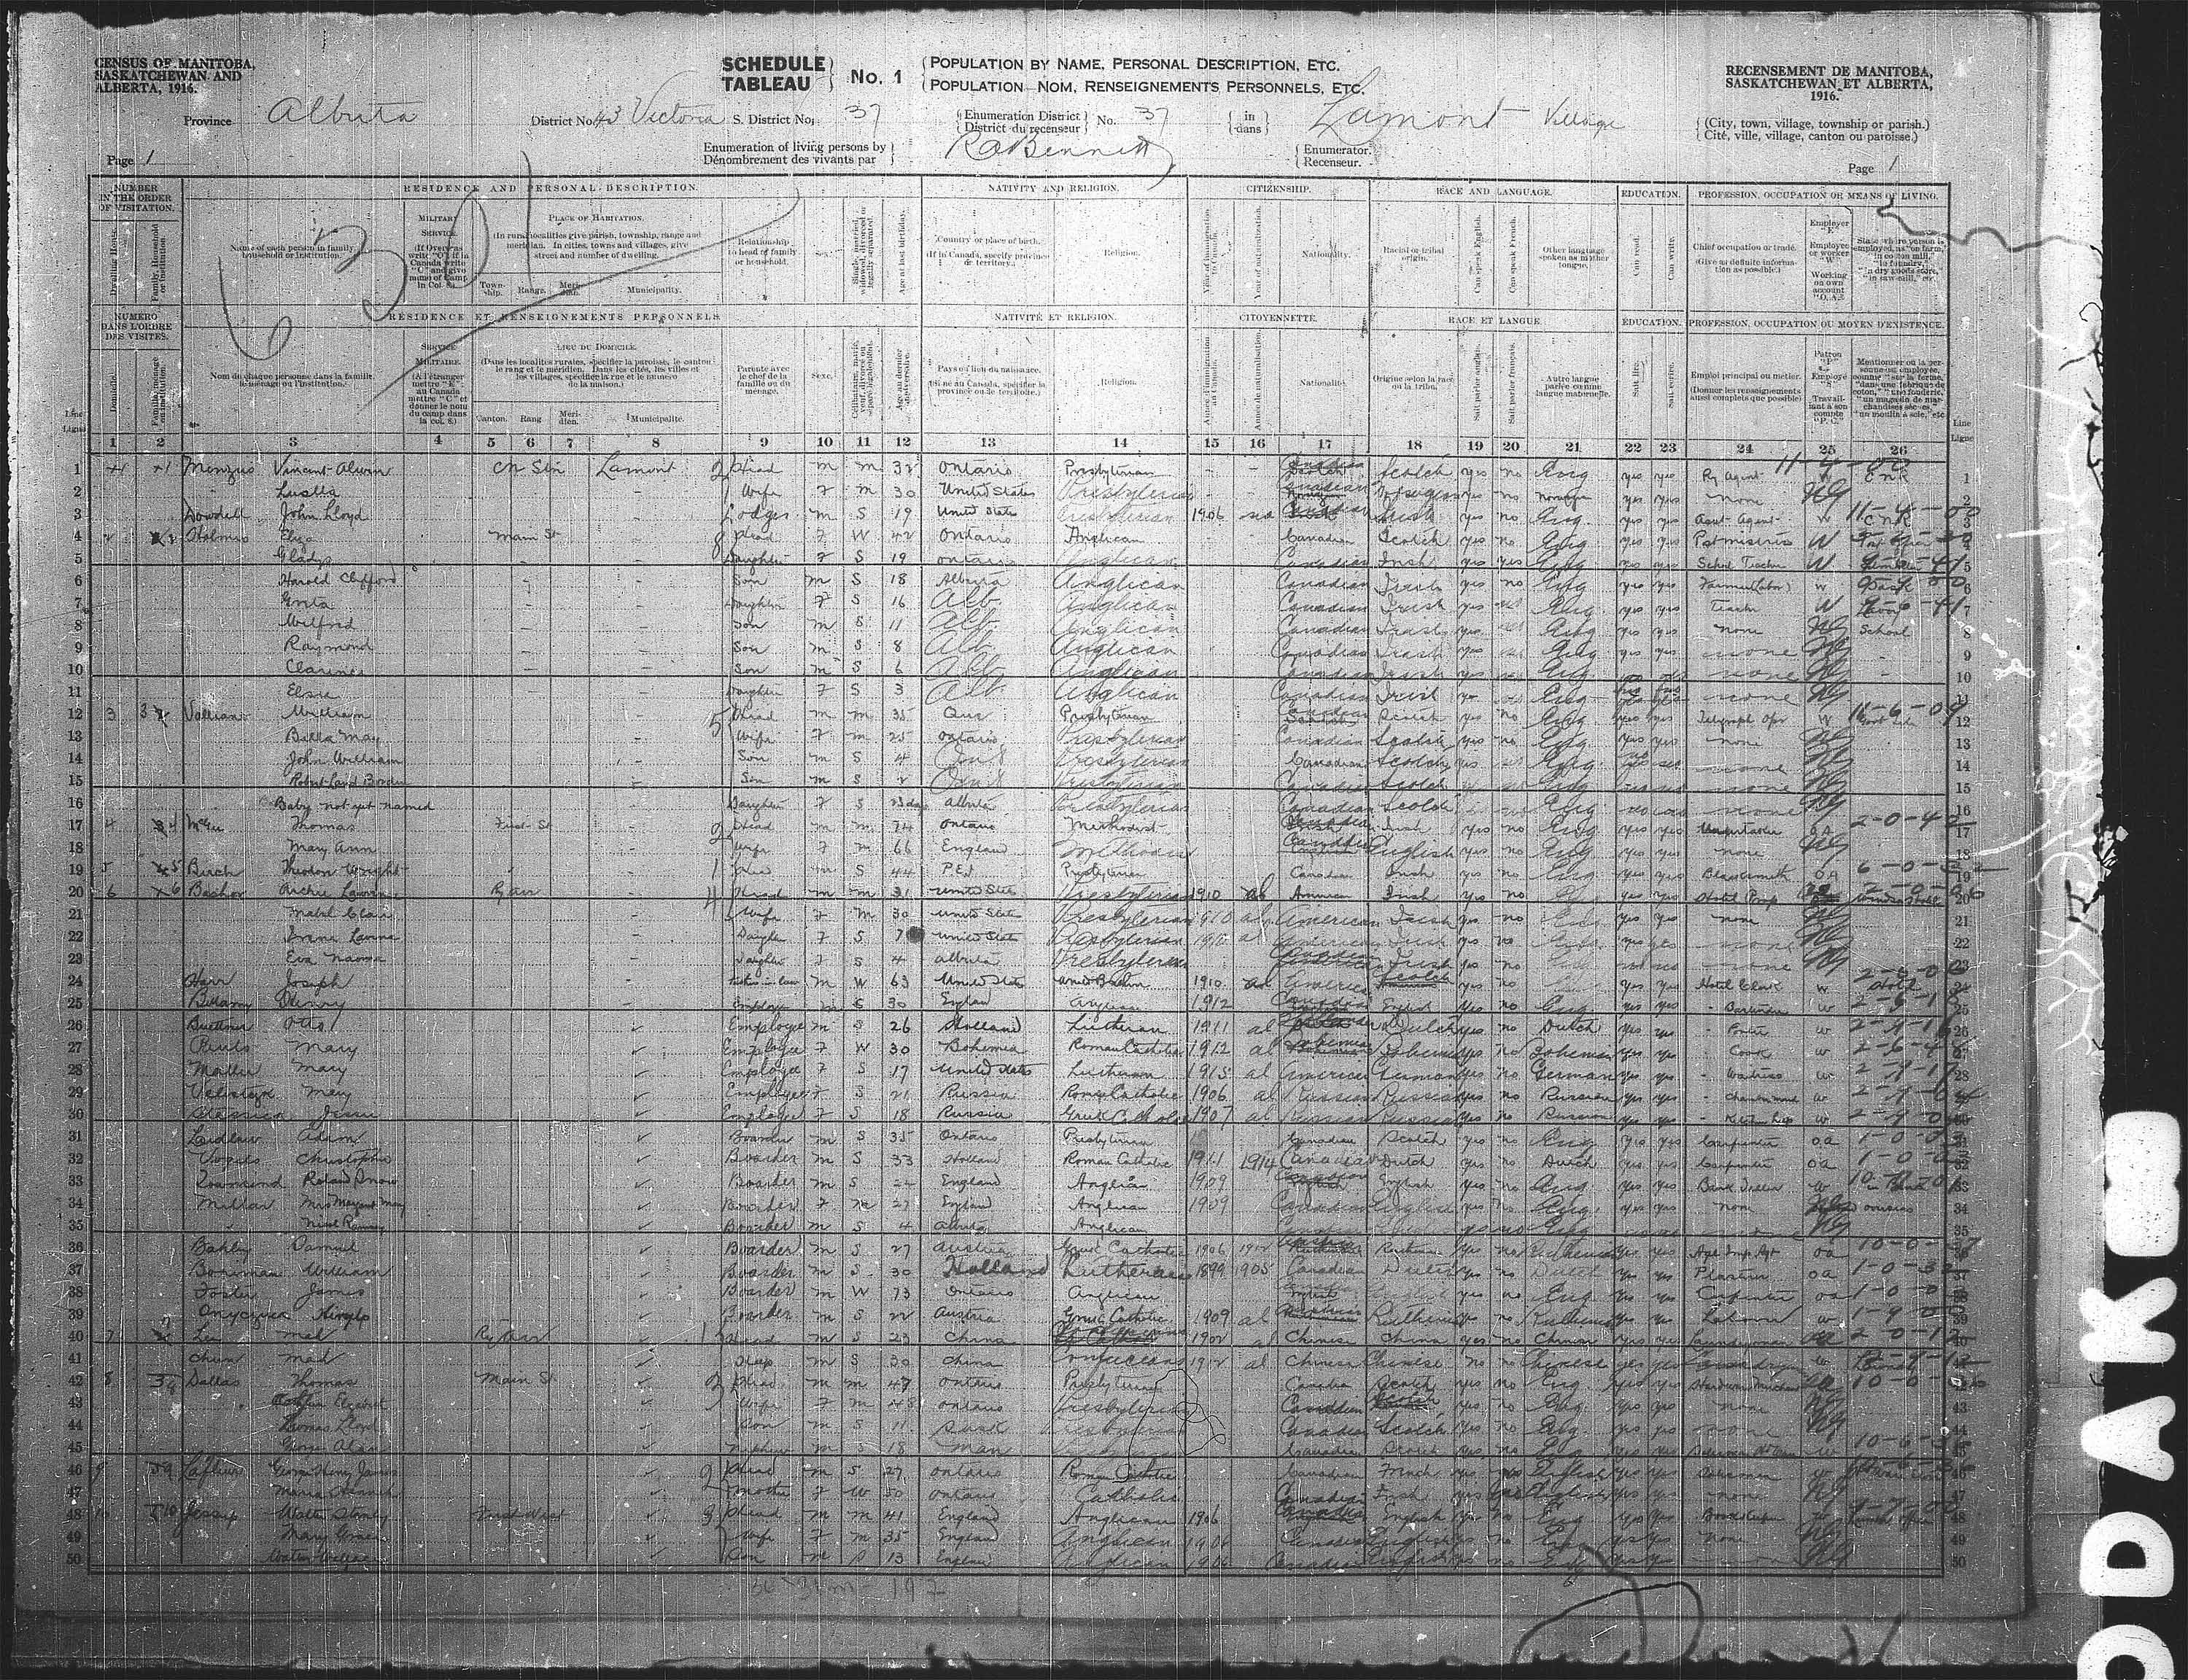 Title: Census of the Prairie Provinces, 1916 - Mikan Number: 3800575 - Microform: t-21956